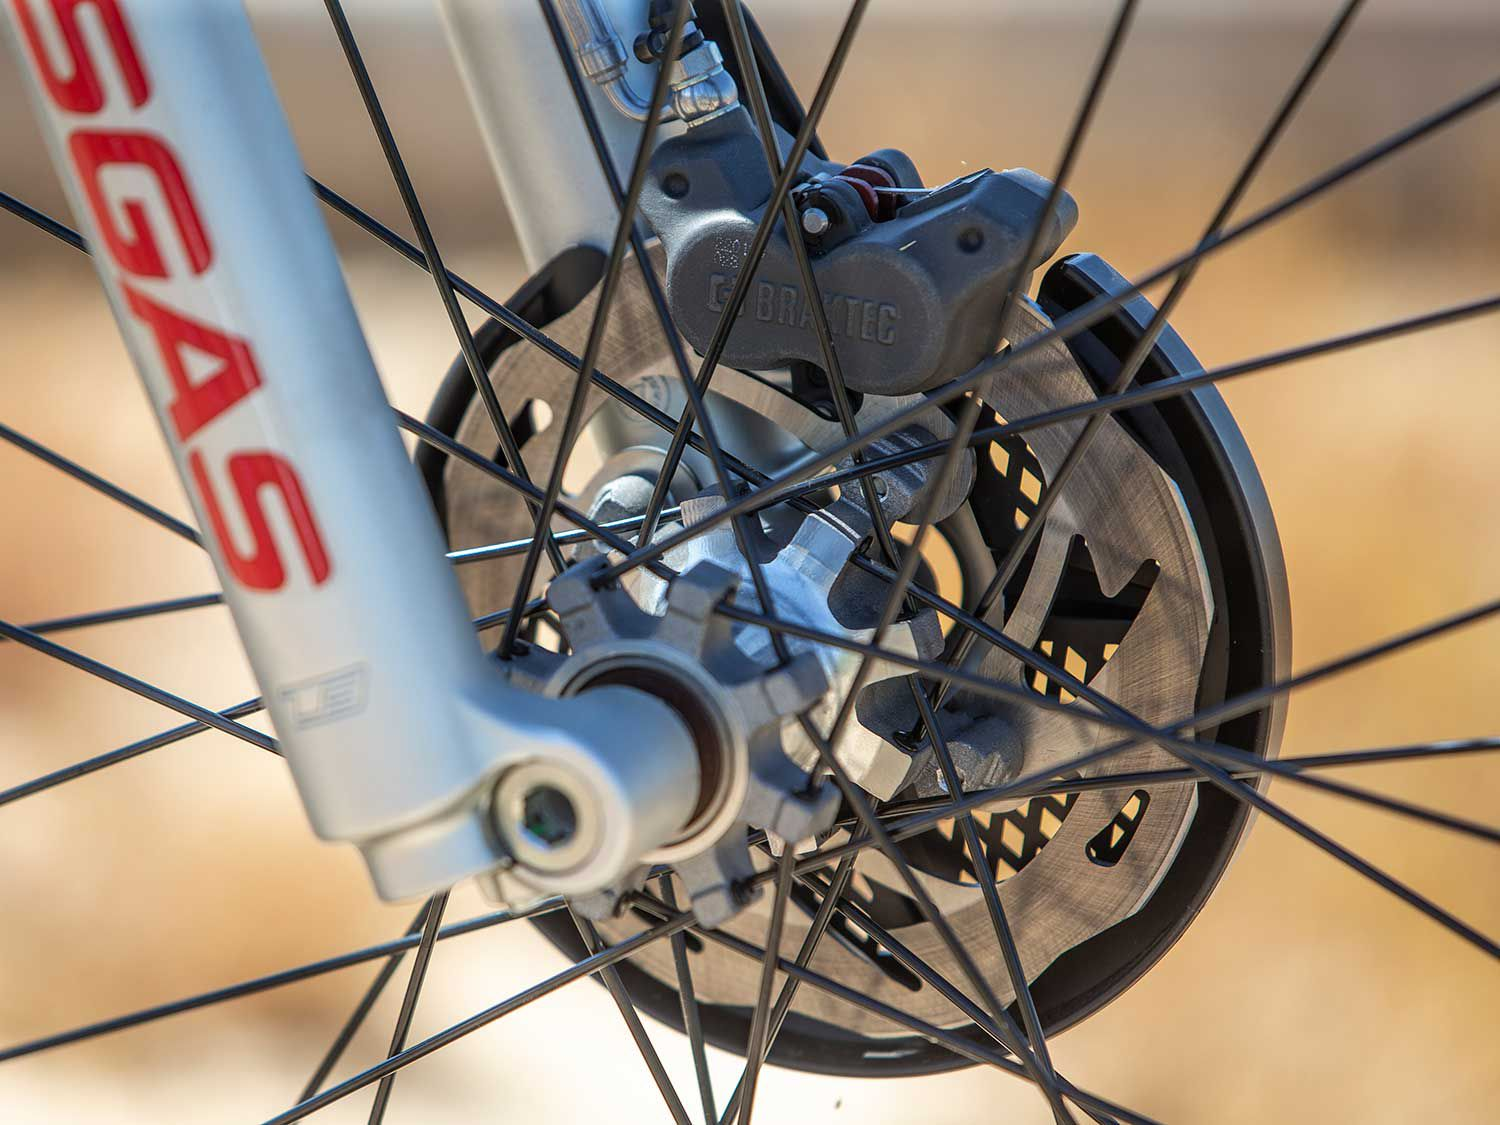 Powerful front and rear disc brakes aid in low-speed maneuvers. Although plenty powerful, the front brake didn't offer the amount of feel we expected.